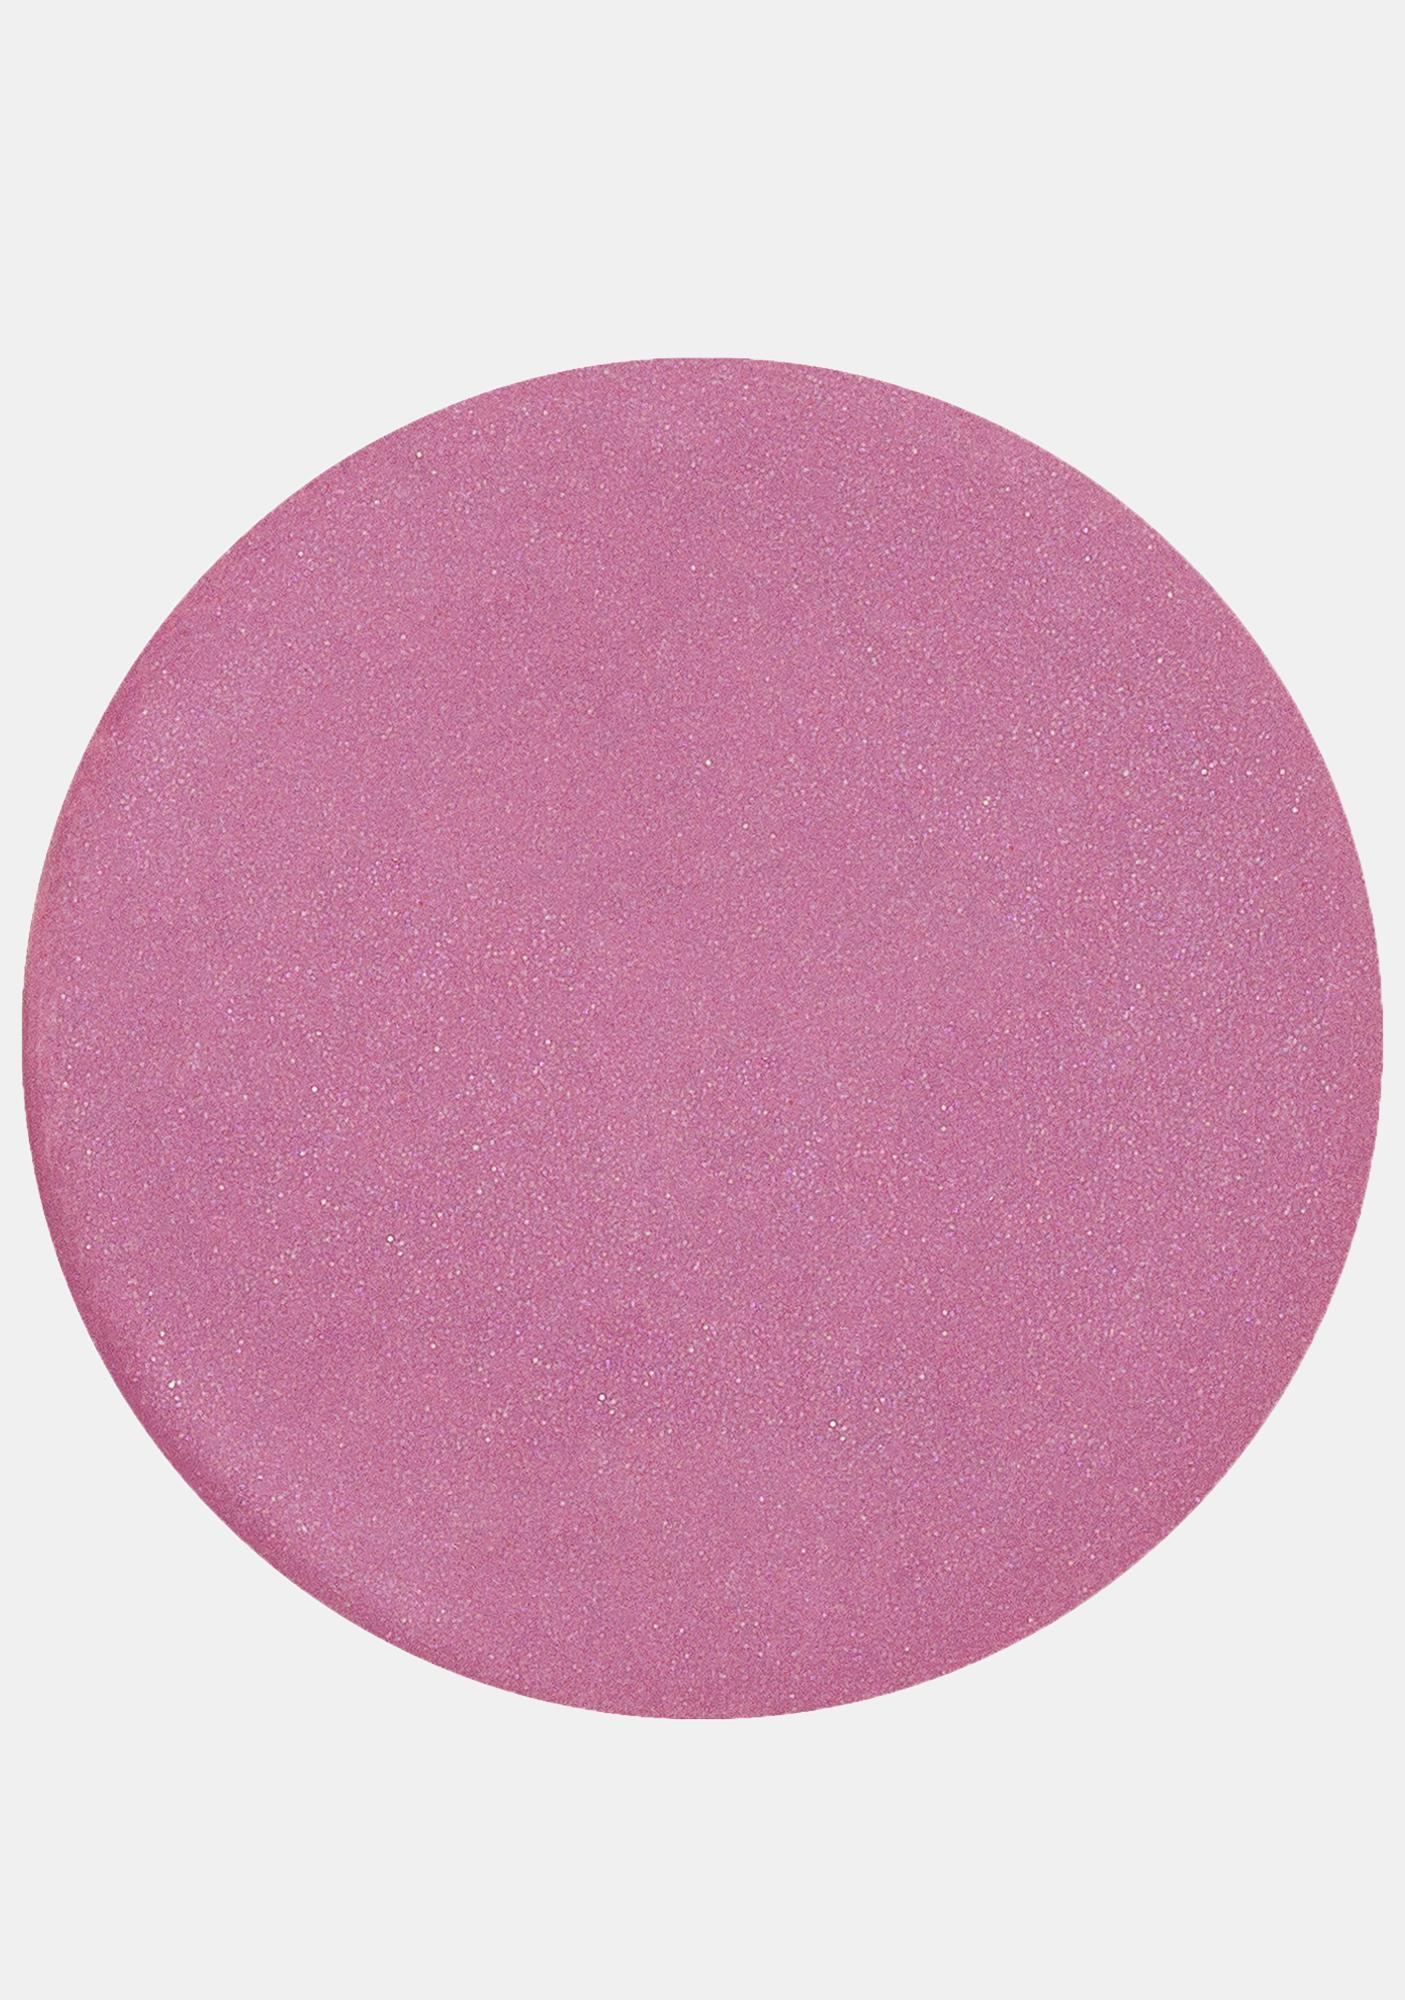 Lime Crime Virtual Orchid Glow Softwear Blush